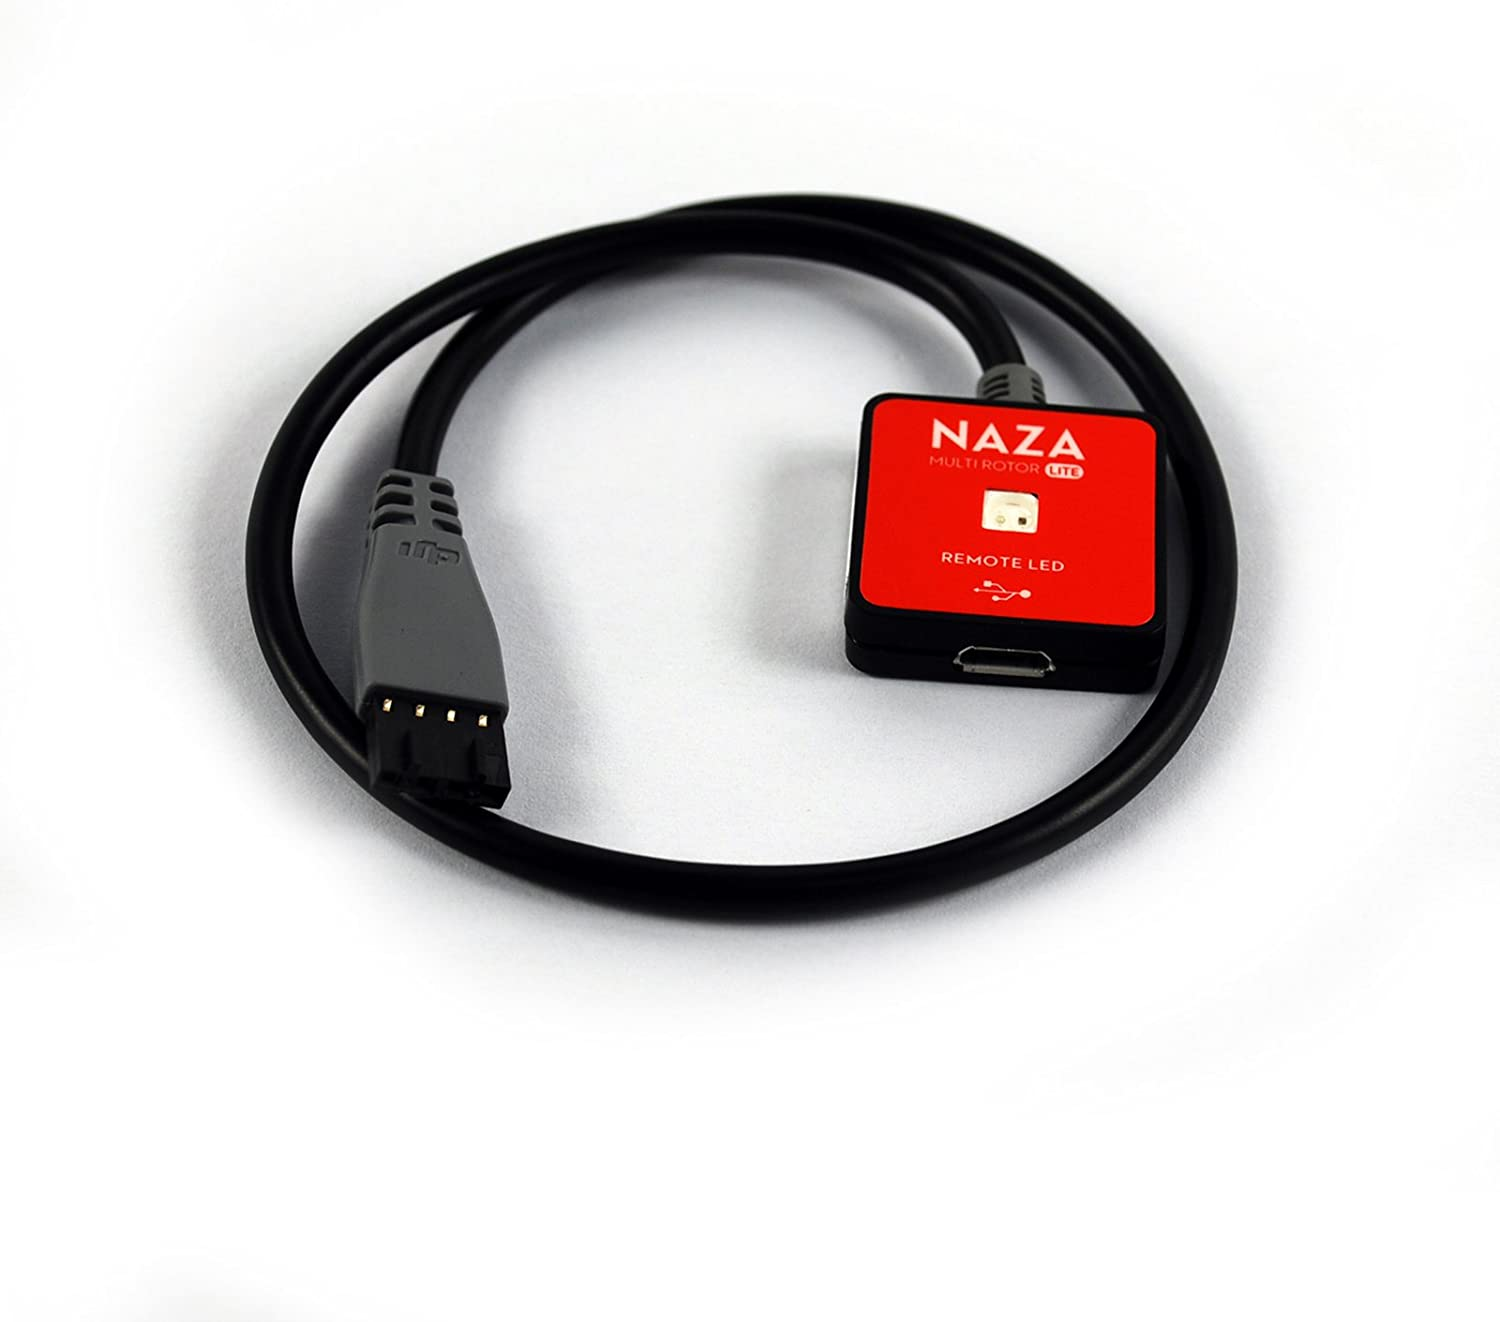 DJI Naza-M Lite Multi-Rotor Flight Controller System(Include LED, PMU, GPS)